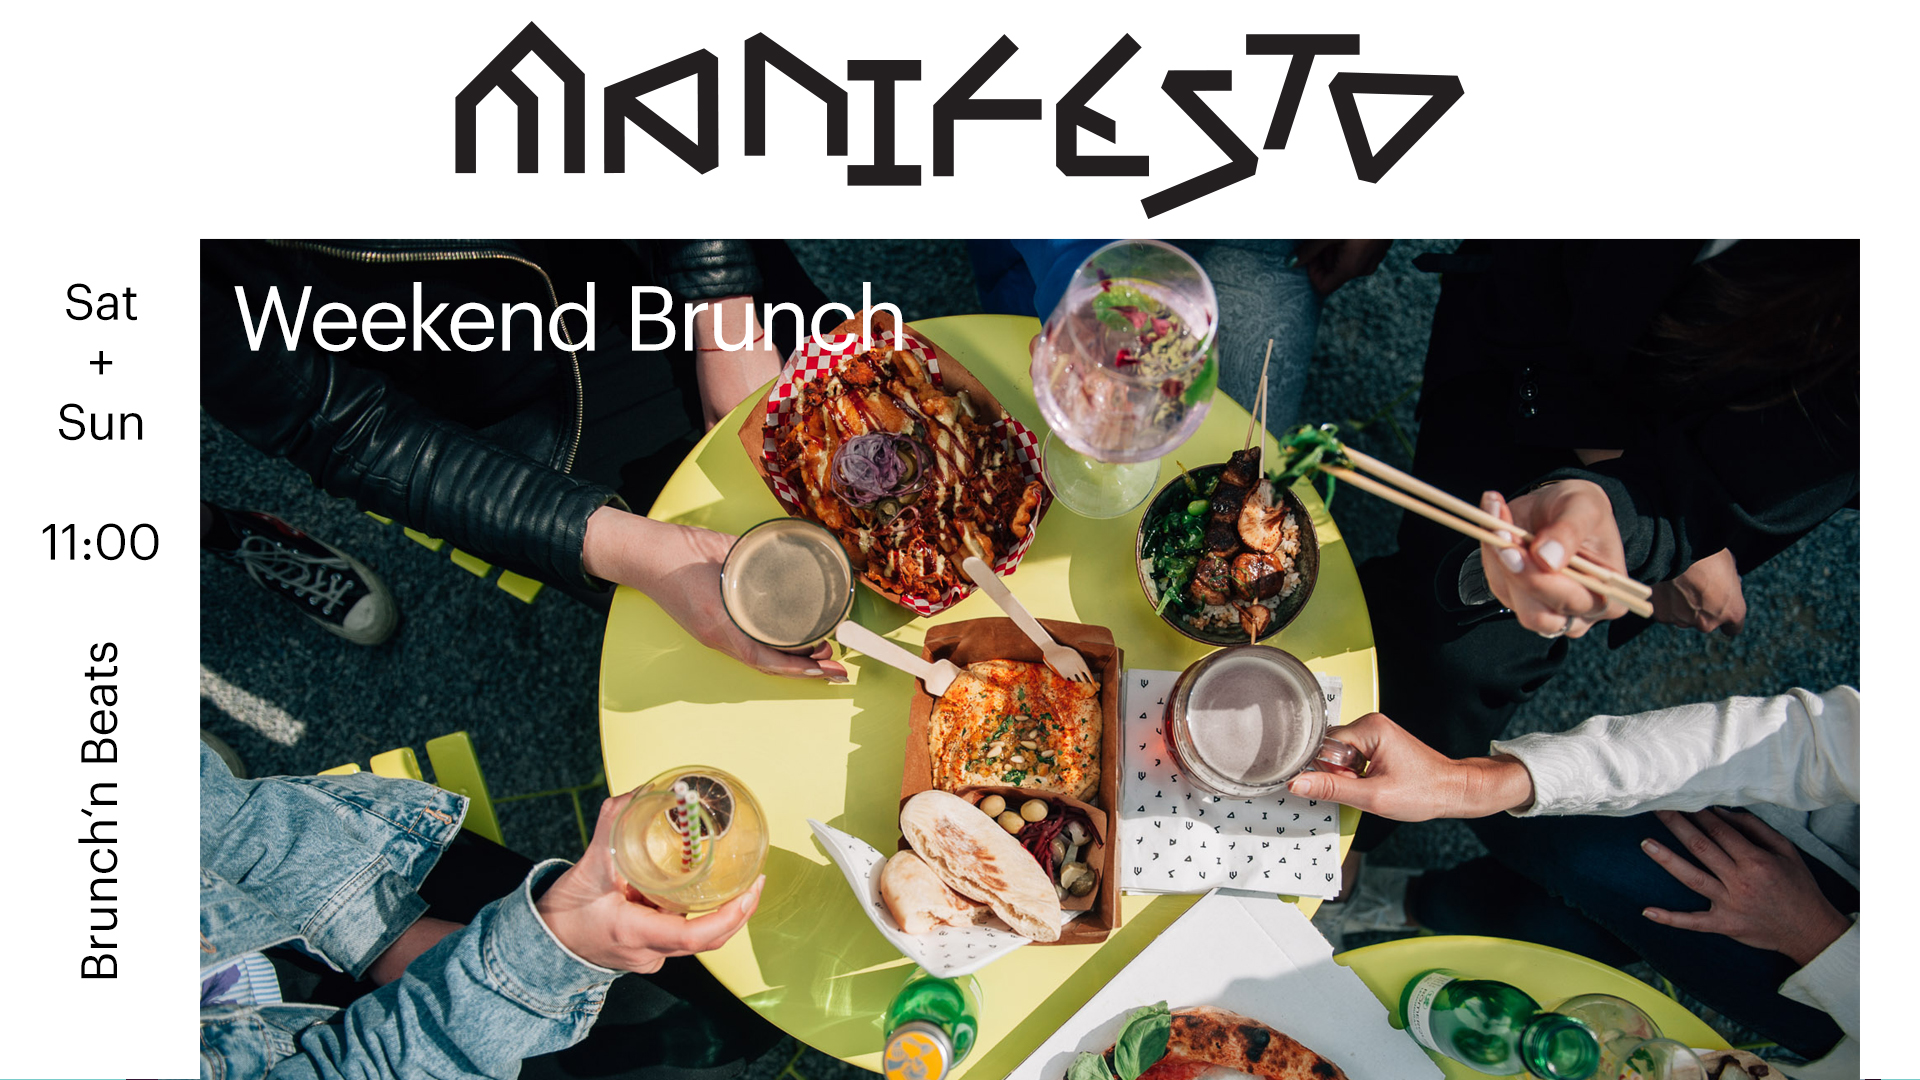 manifesto_2019-FB_EVENT-5-2019-brunch-2.jpg